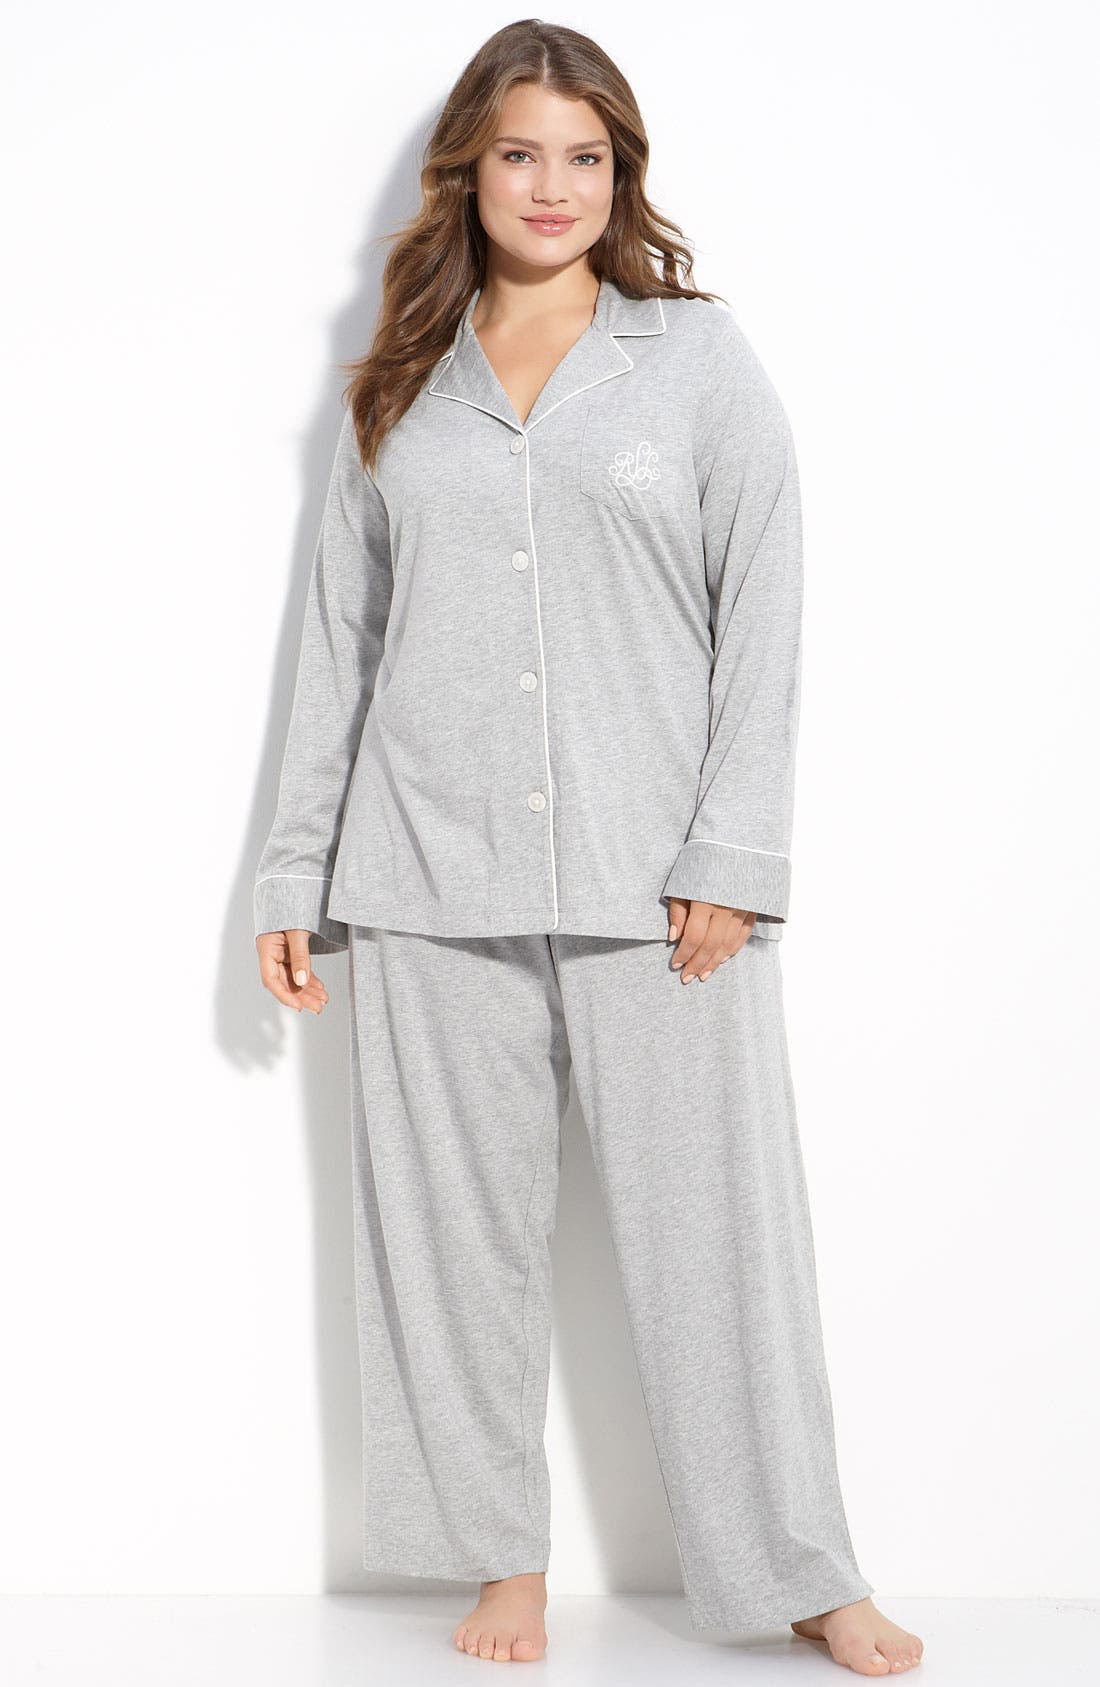 Alternate Image 1 Selected - Lauren Ralph Lauren Knit Pajamas (Plus Size) (Online Only)